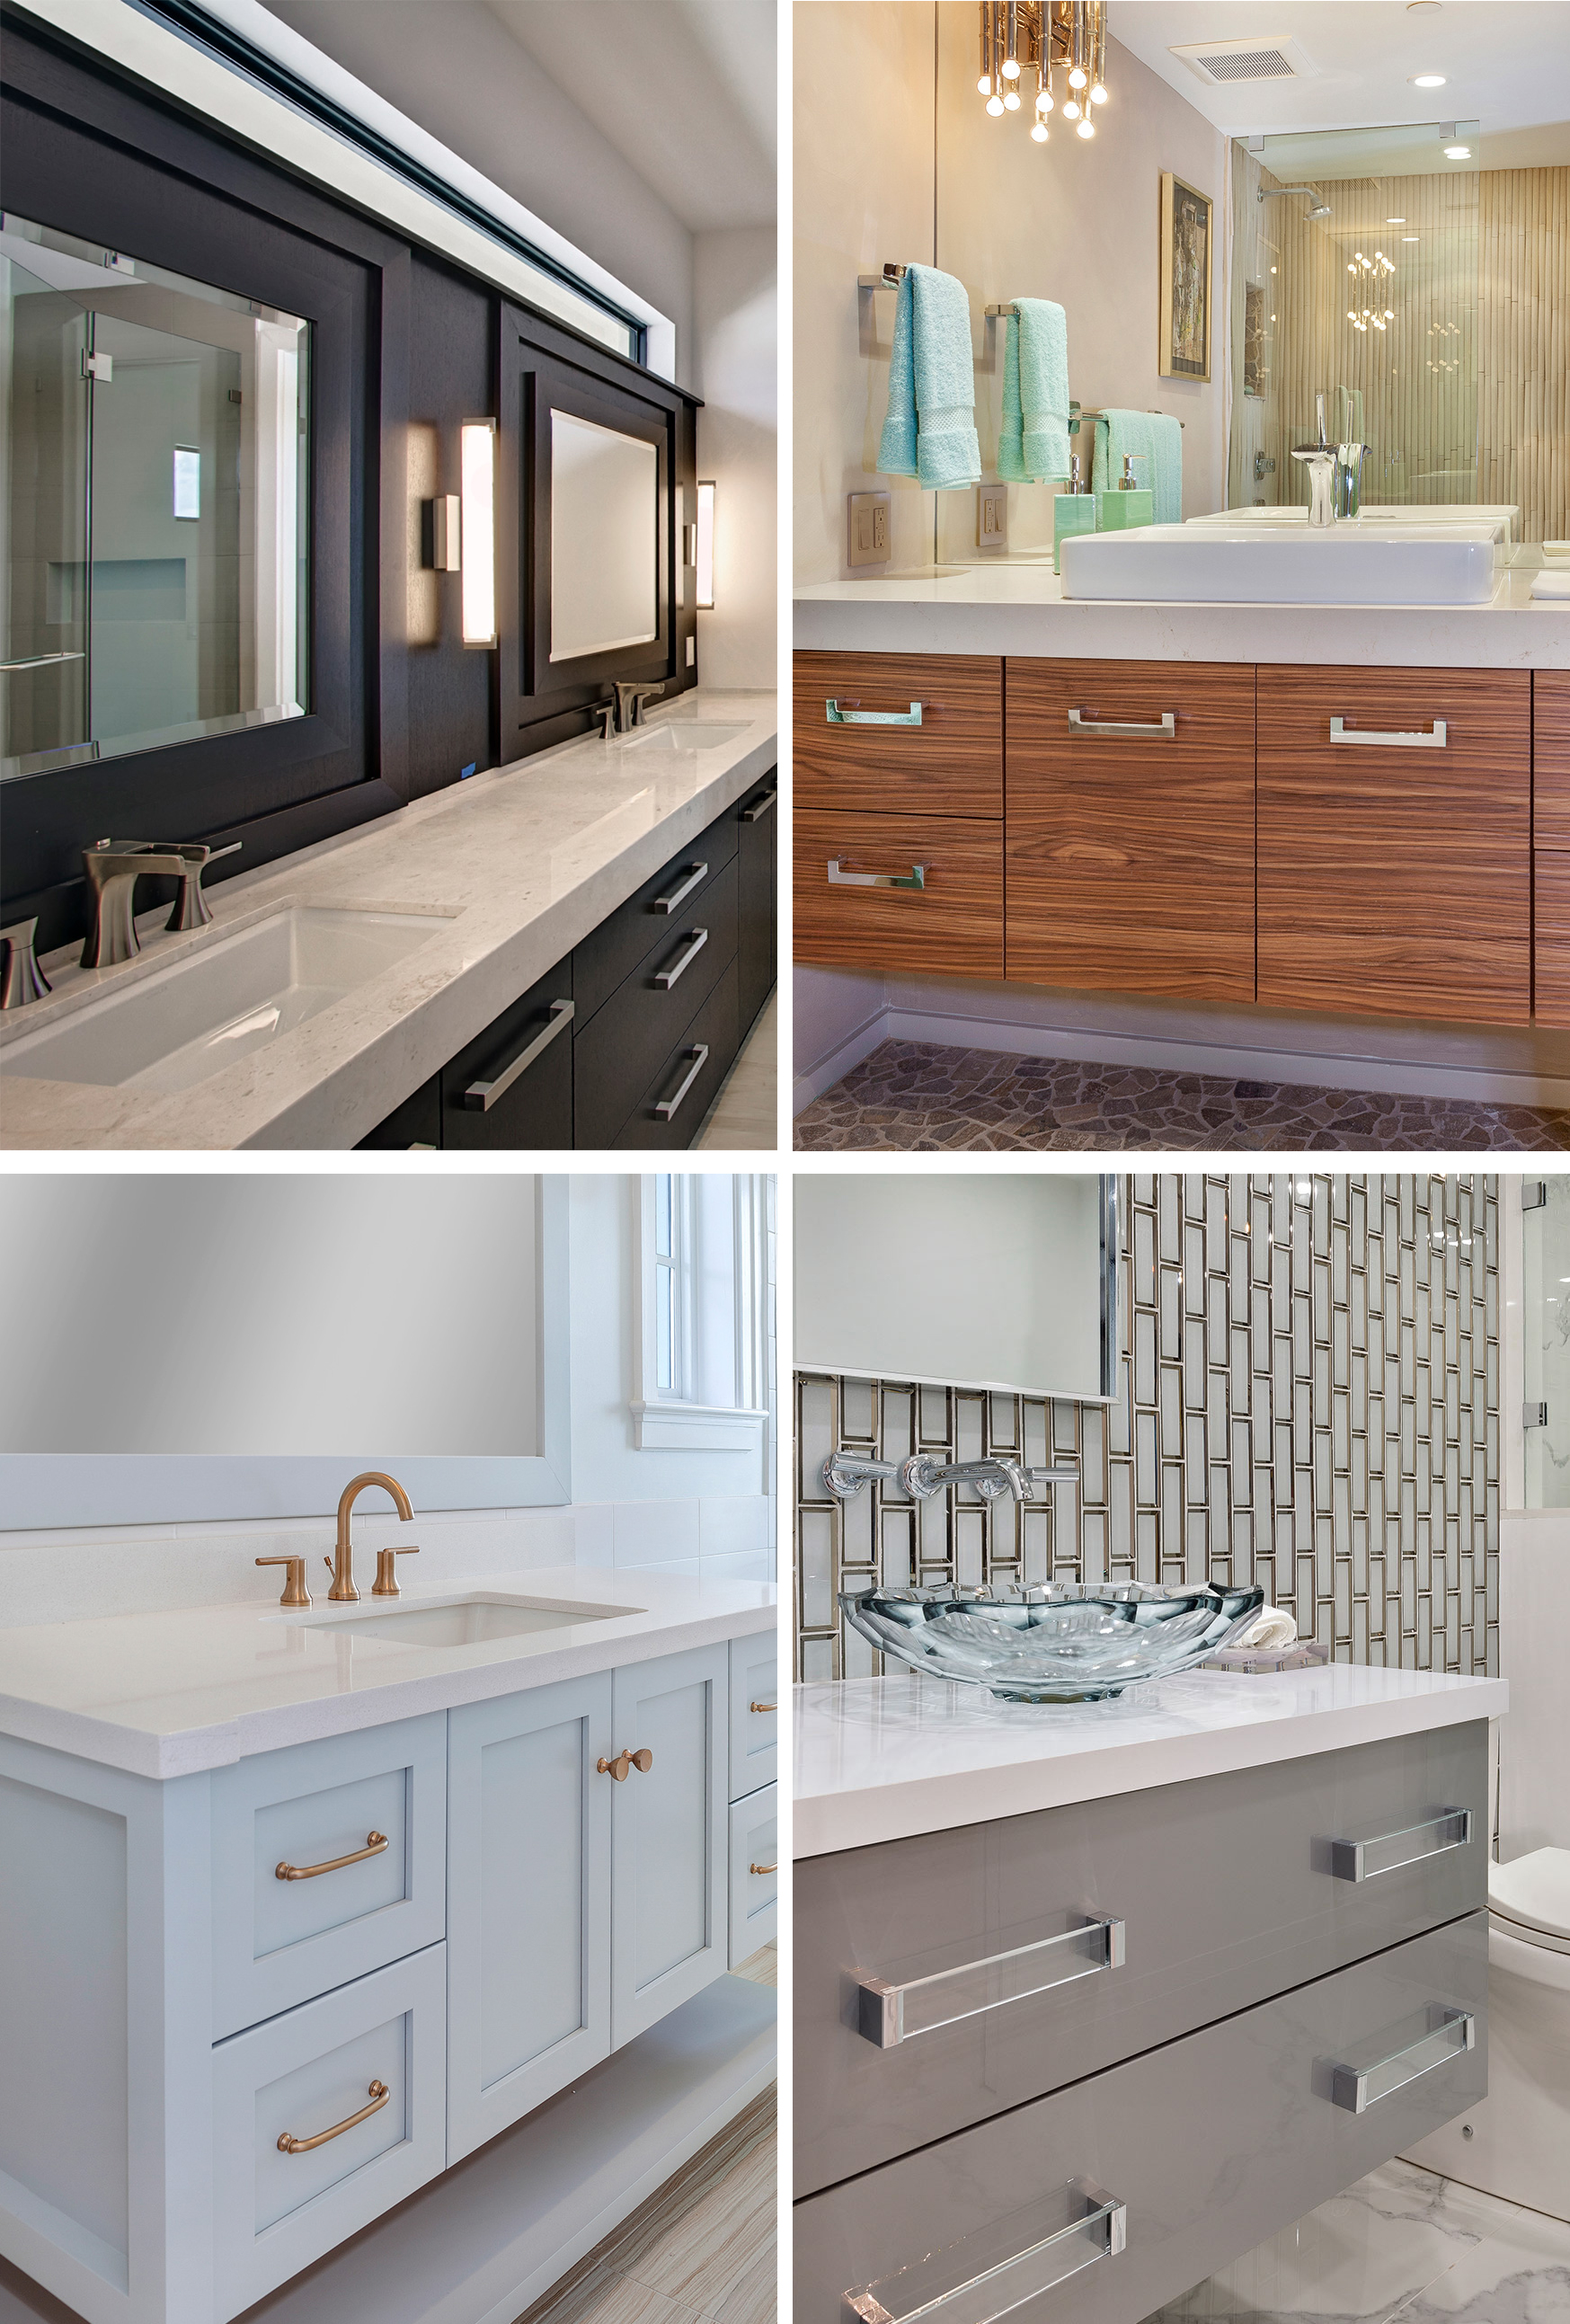 Custom Bathroom Vanities The Place For Kitchens And Baths